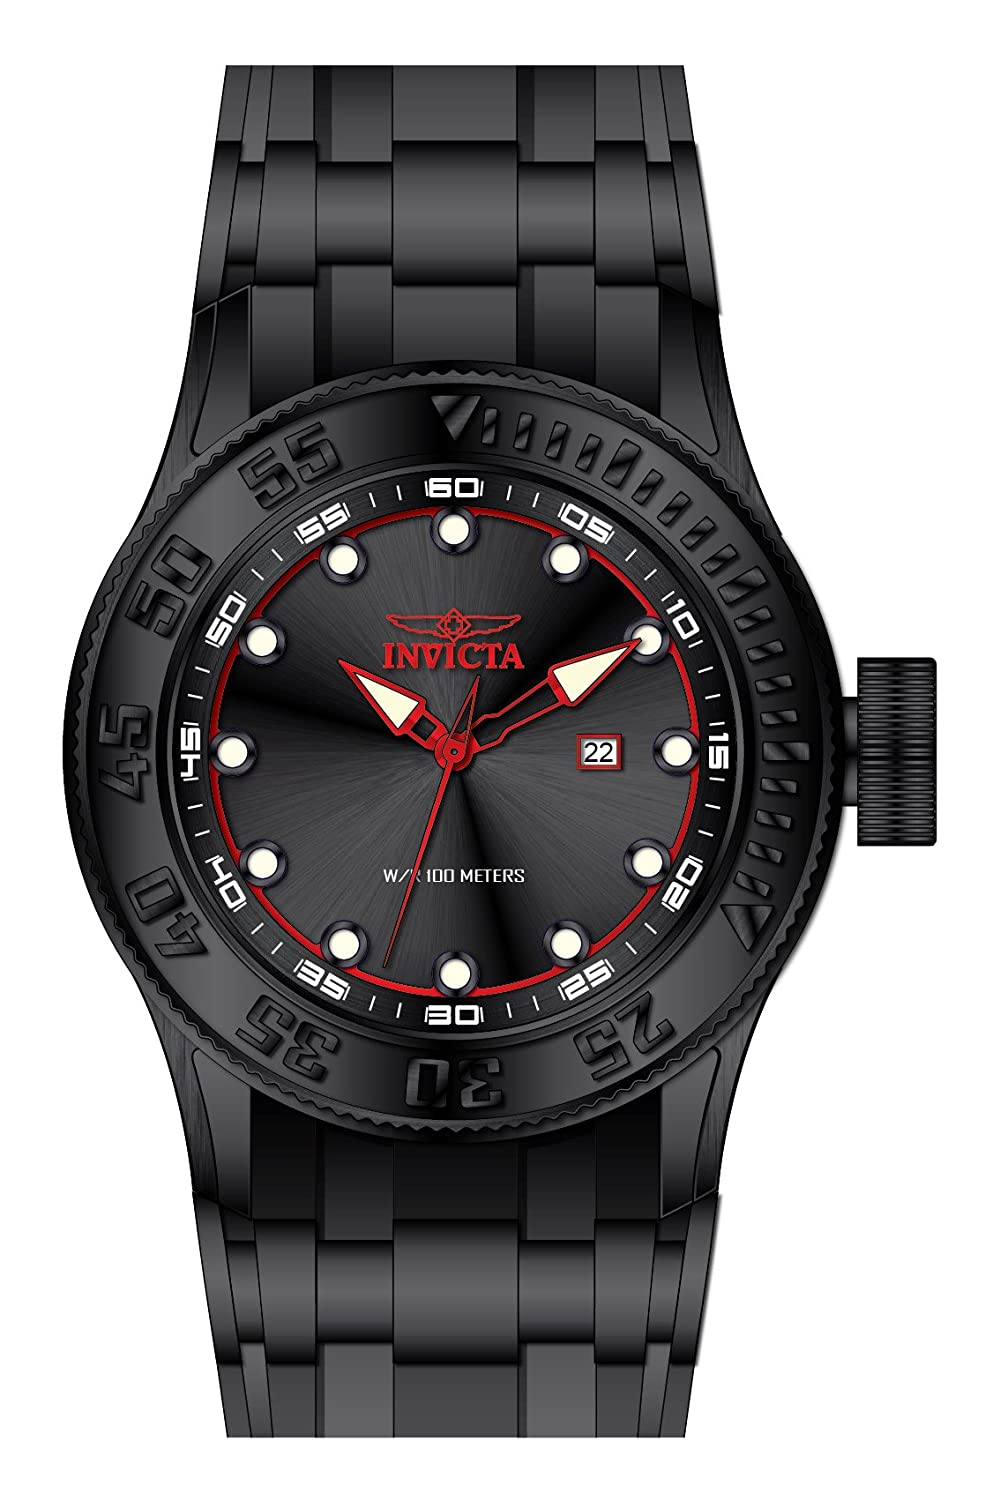 Amazon.com: Invicta Mens Pro Diver Stainless Steel Quartz Watch with Silicone Strap, Black, 26 (Model: 22248: Watches